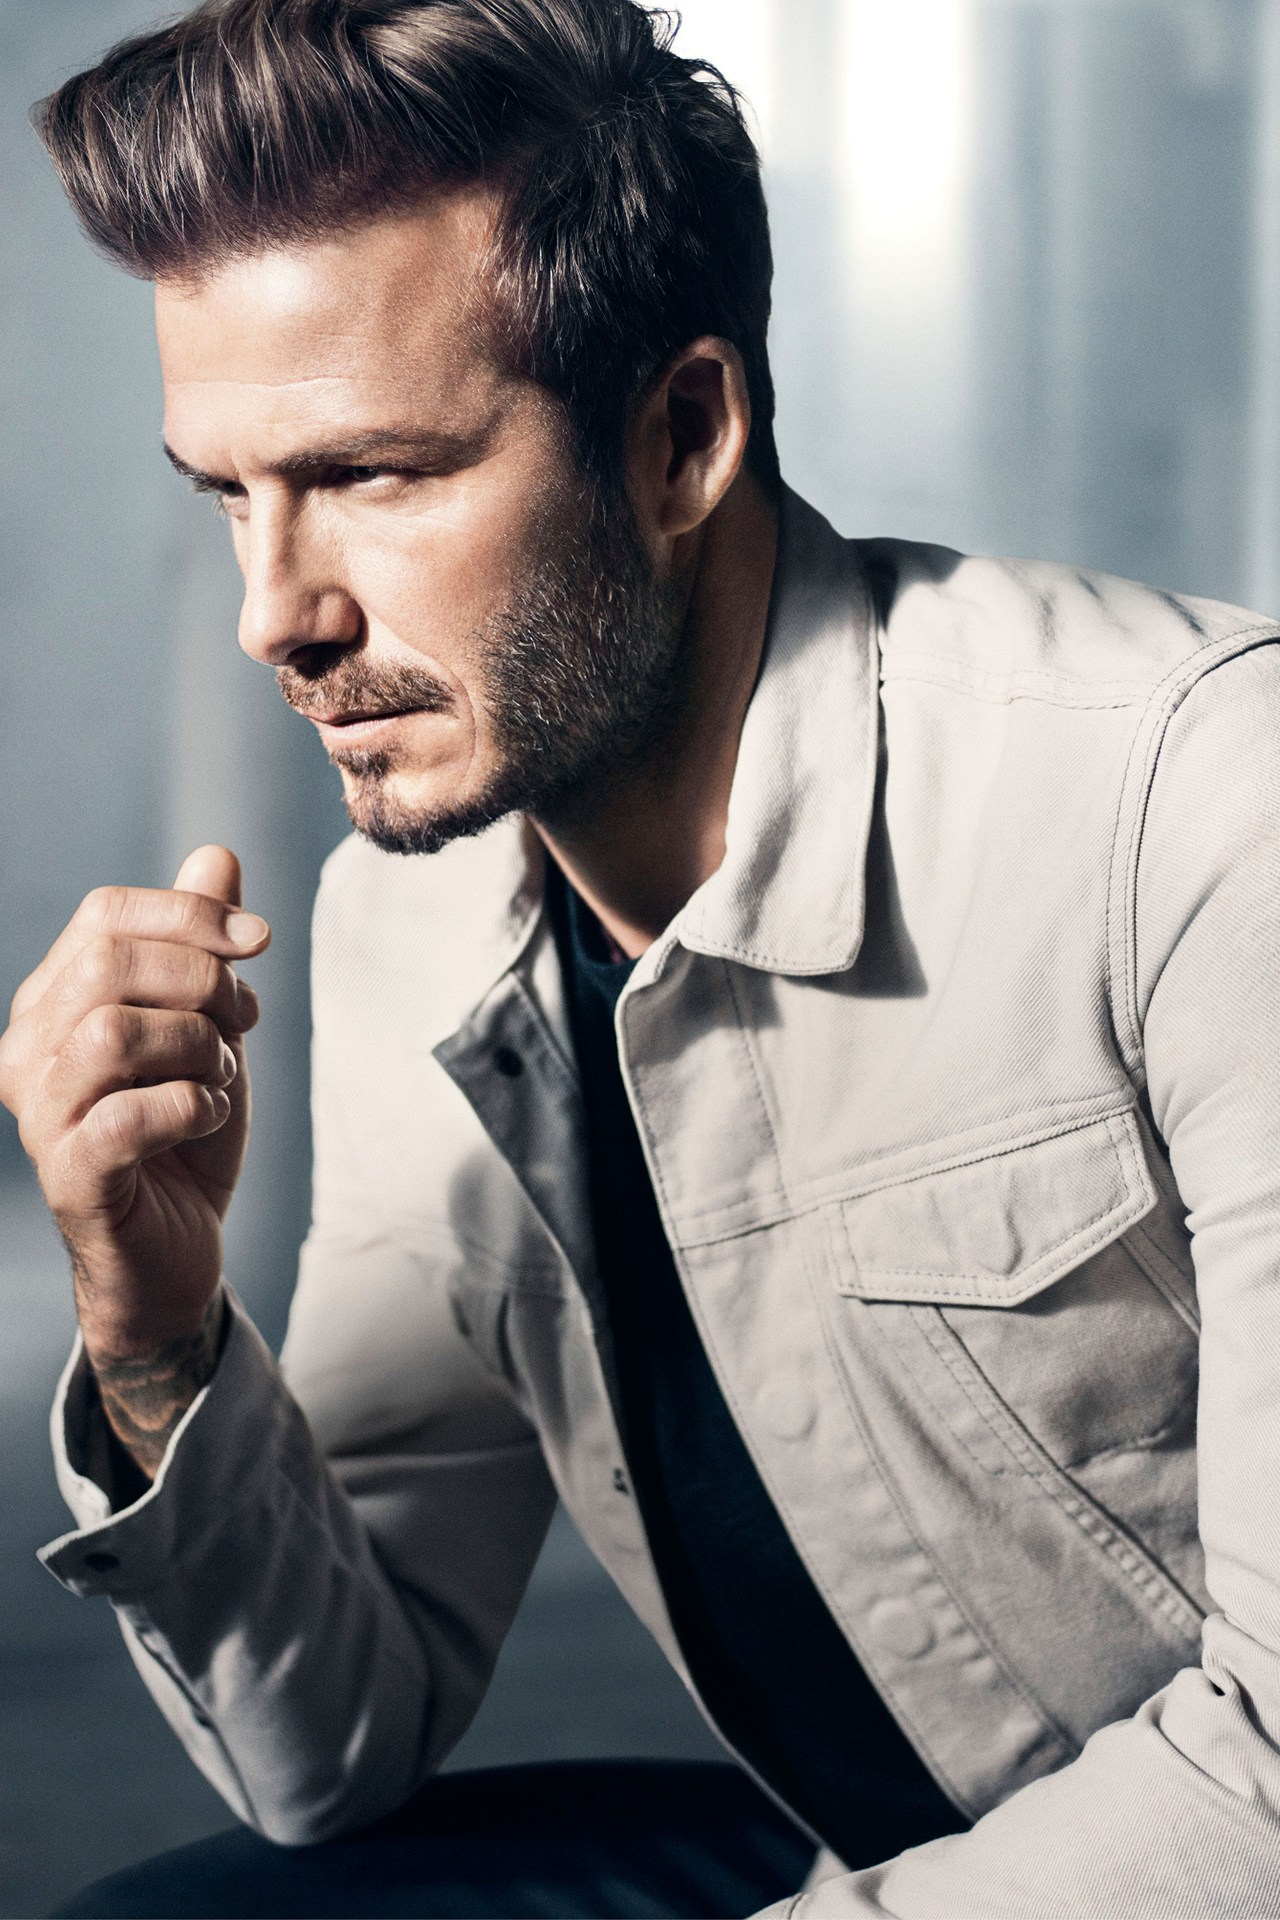 David-Beckham-HM 5-Vogue 20Jan15 pr_b_1280x1920